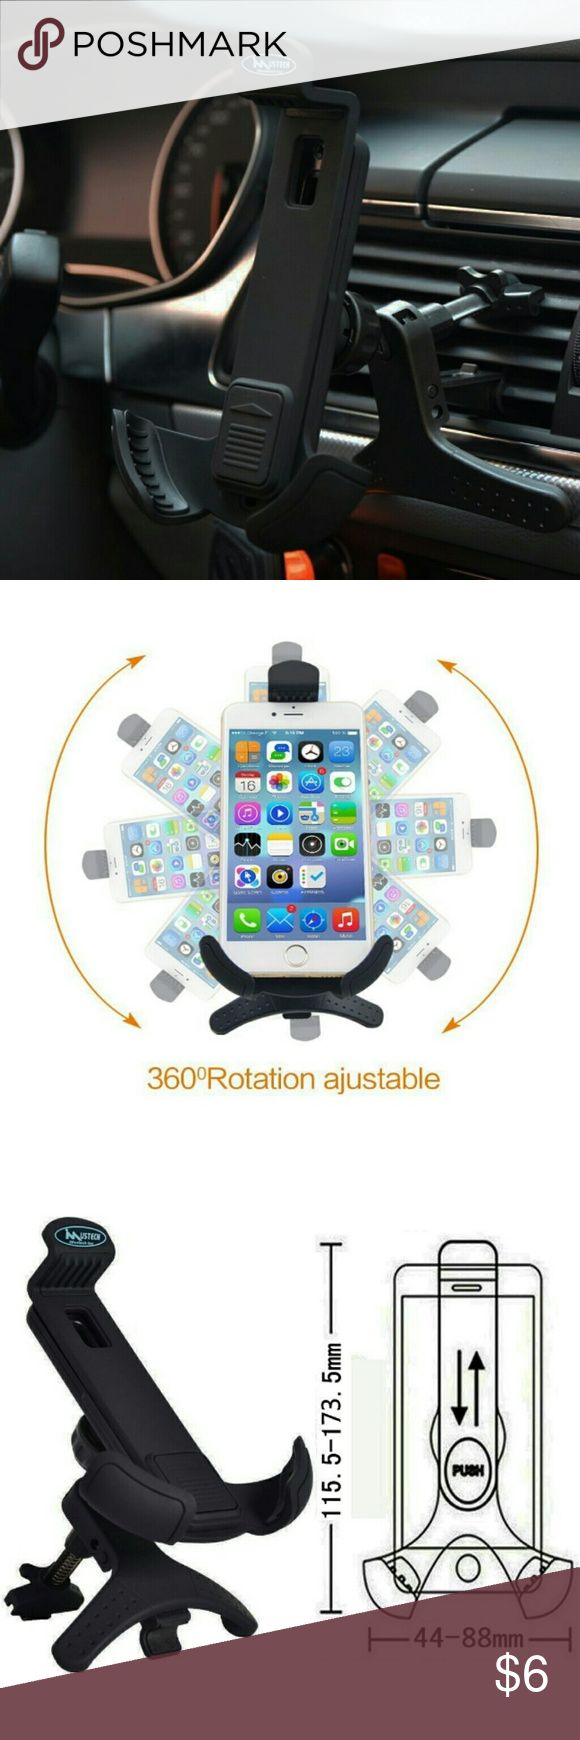 Phone holder car air vent 360 pivot of this cellphone car mount holder allows you